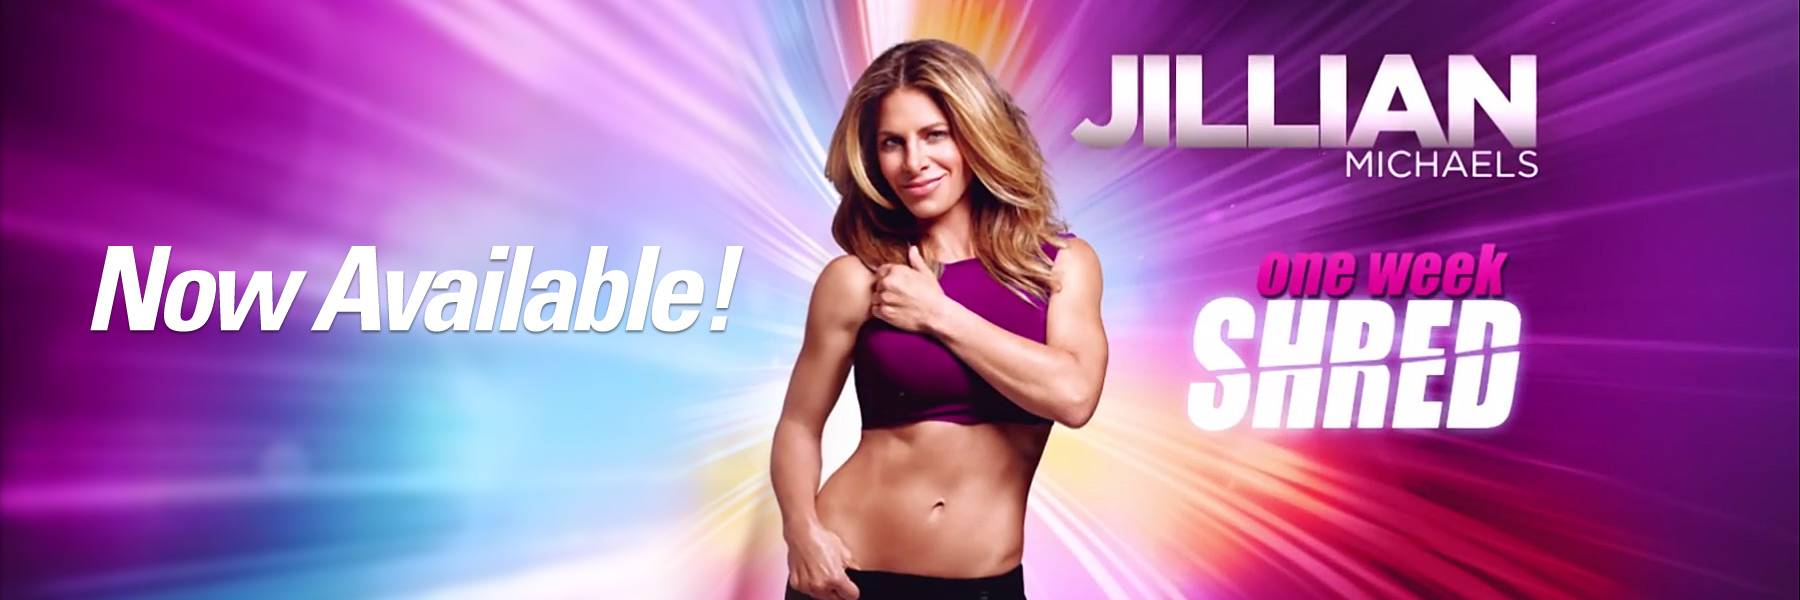 One Week Shred with Jillian Michaels